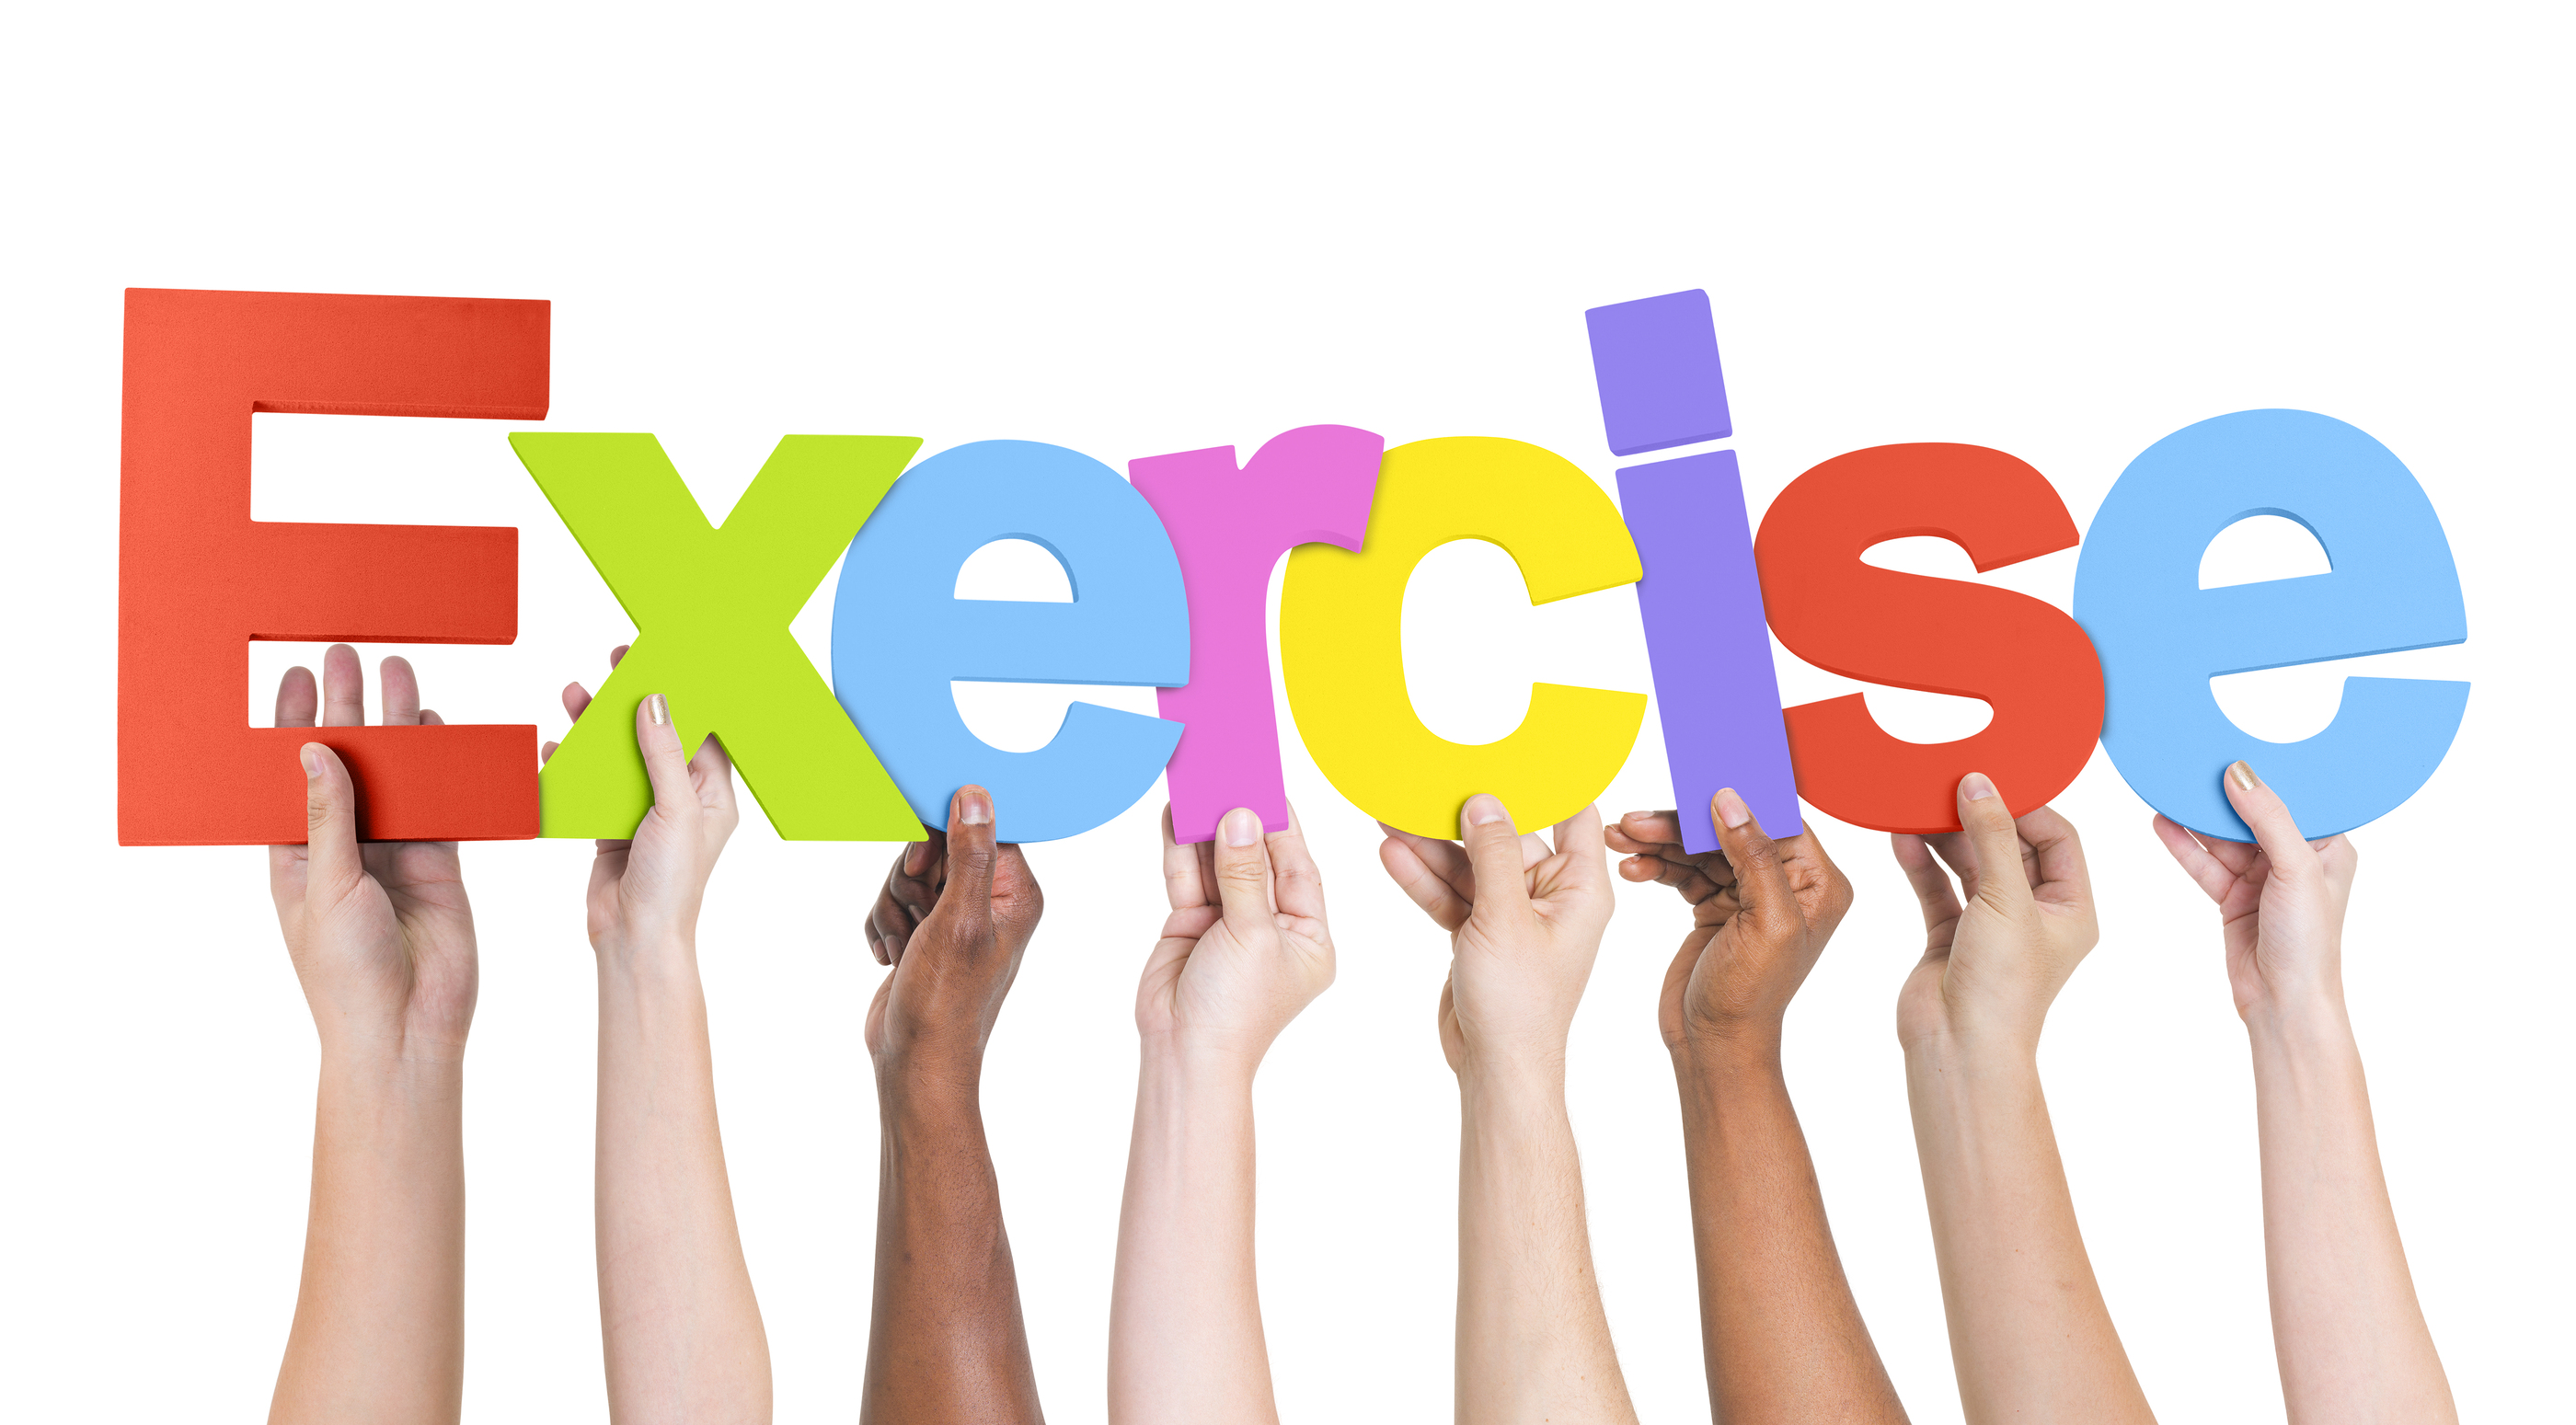 The Abcs And Benefits Of Physical Activity  Seashore Point  The Abcs And Benefits Of Physical Activity